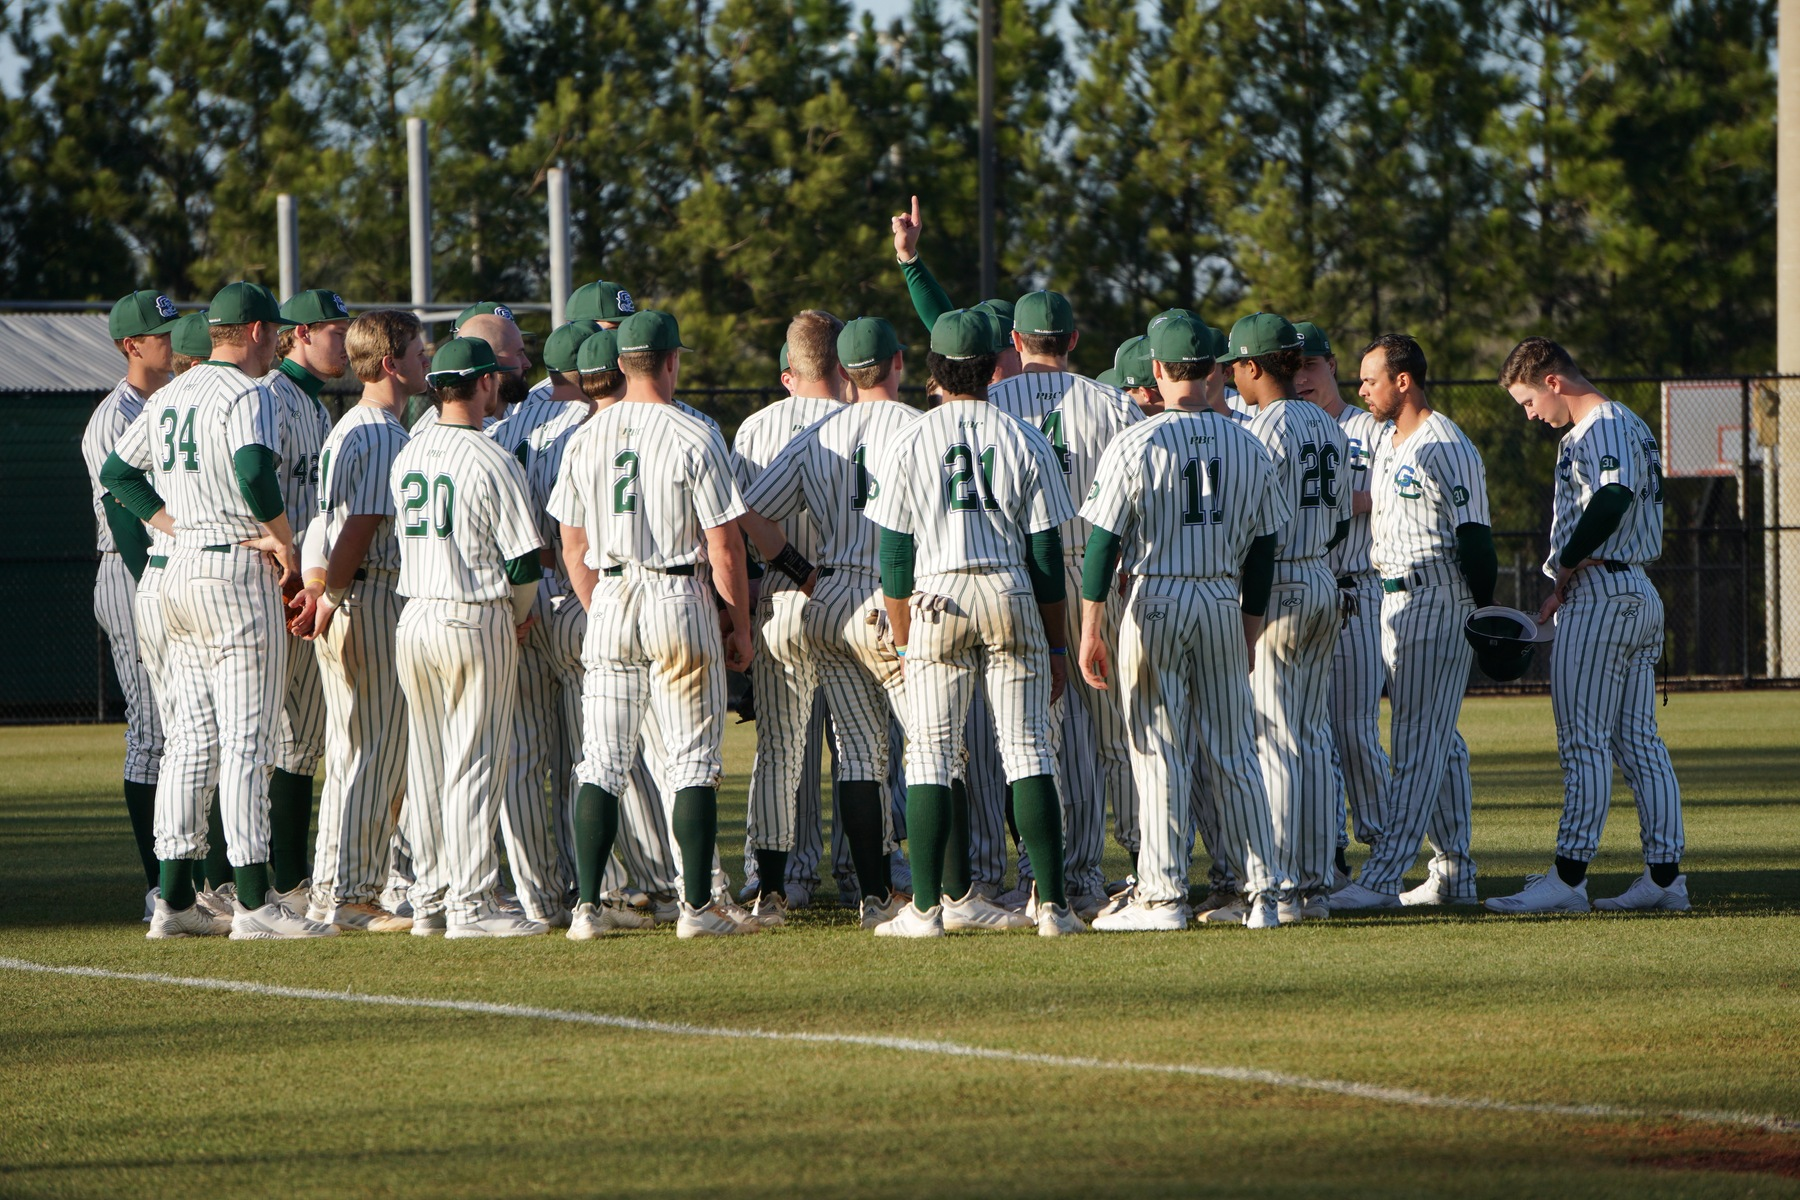 GC Baseball Downed Twice in Saturday Doubleheader versus Flagler, 7-1 and 6-2